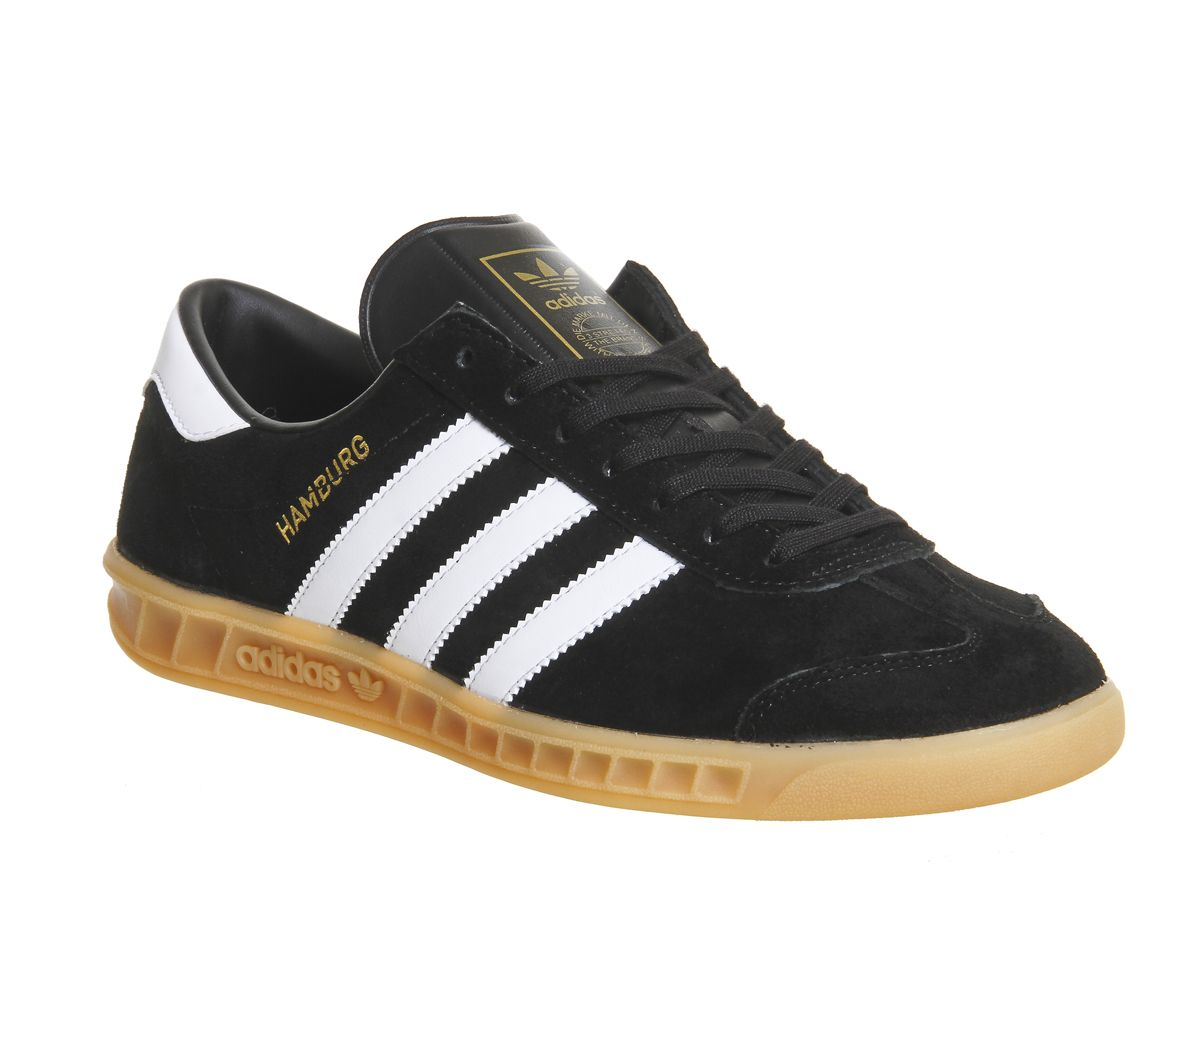 ec3177cc7bf Adidas Hamburg Black Gum - His trainers